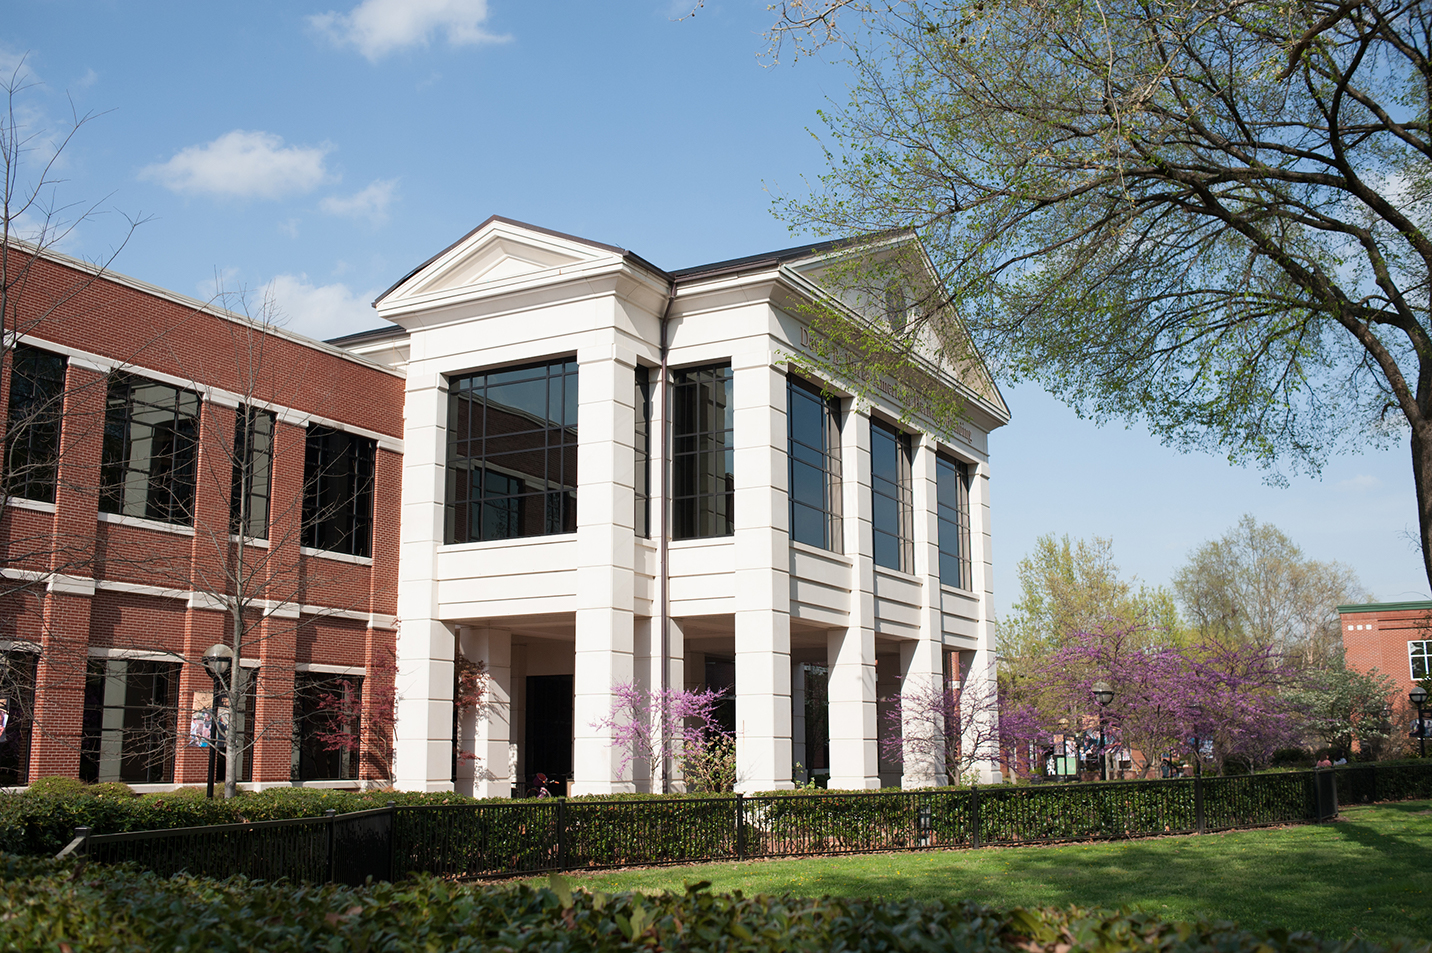 A photo of the Heritage building at harding University.